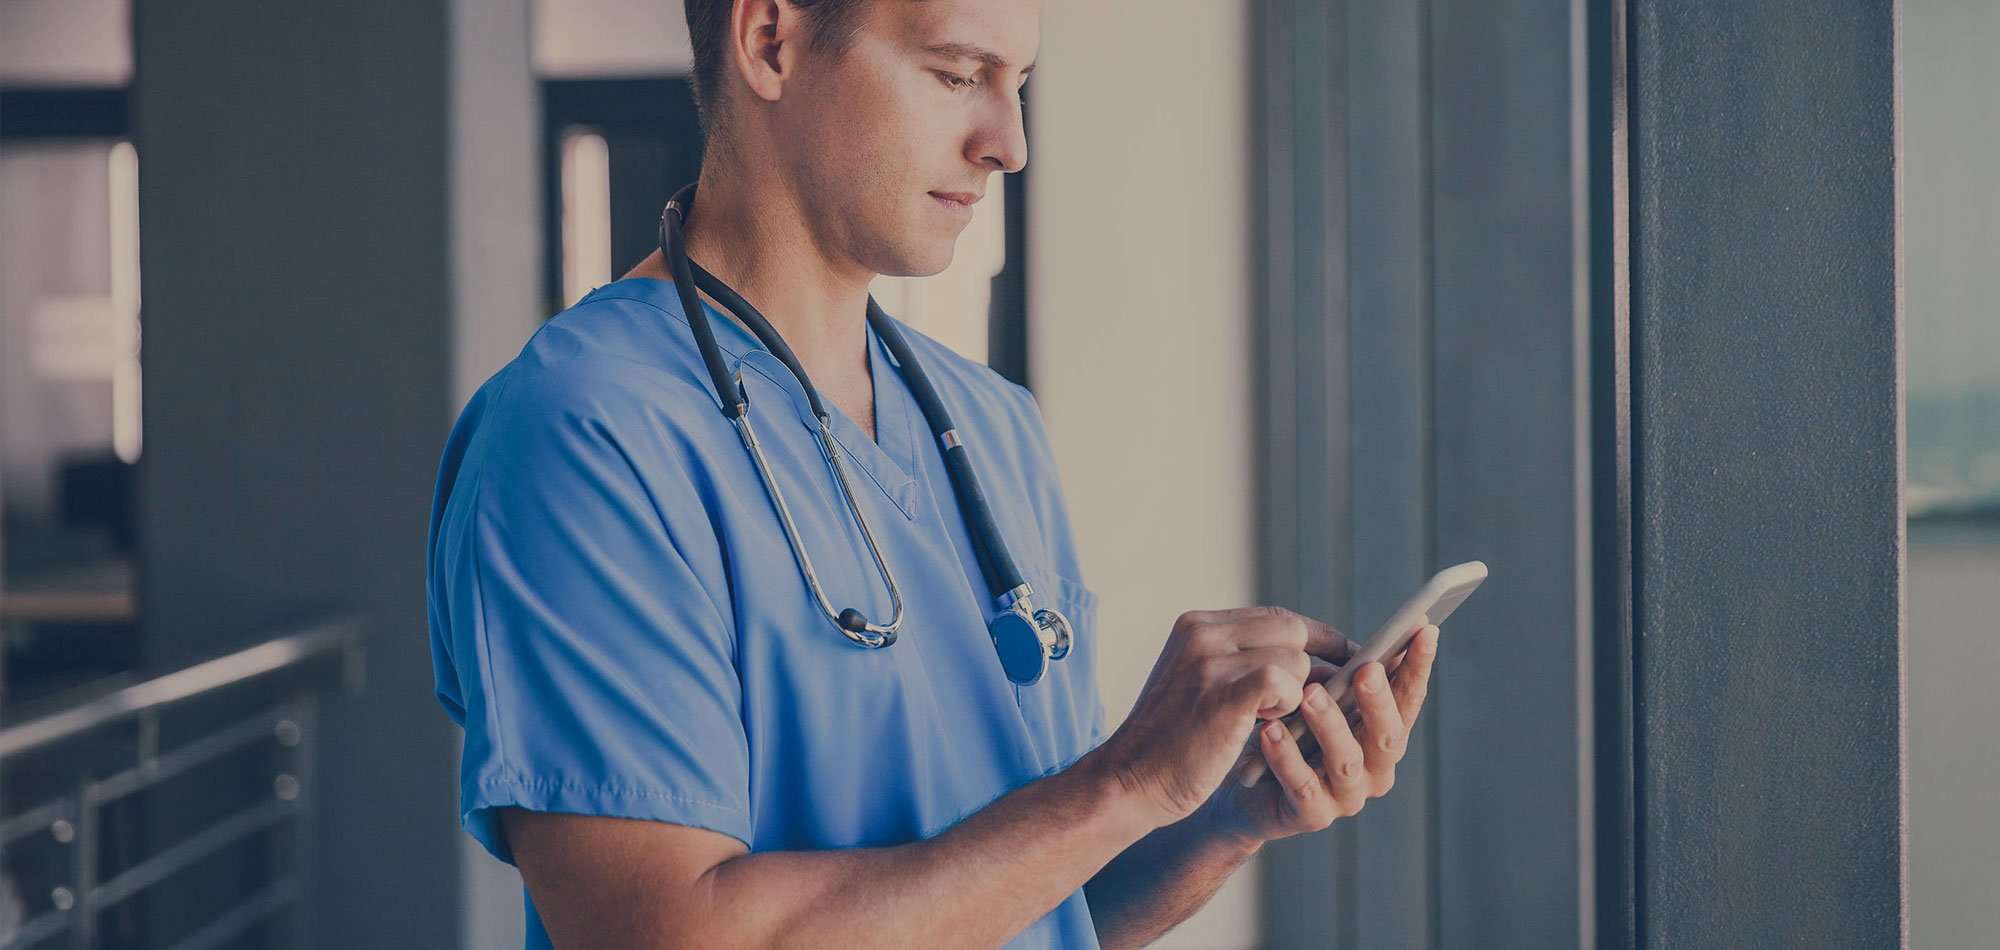 What are the 4 Most Important WLAN Design Factors Impacting Your Hospital's Wi-Fi Performance?